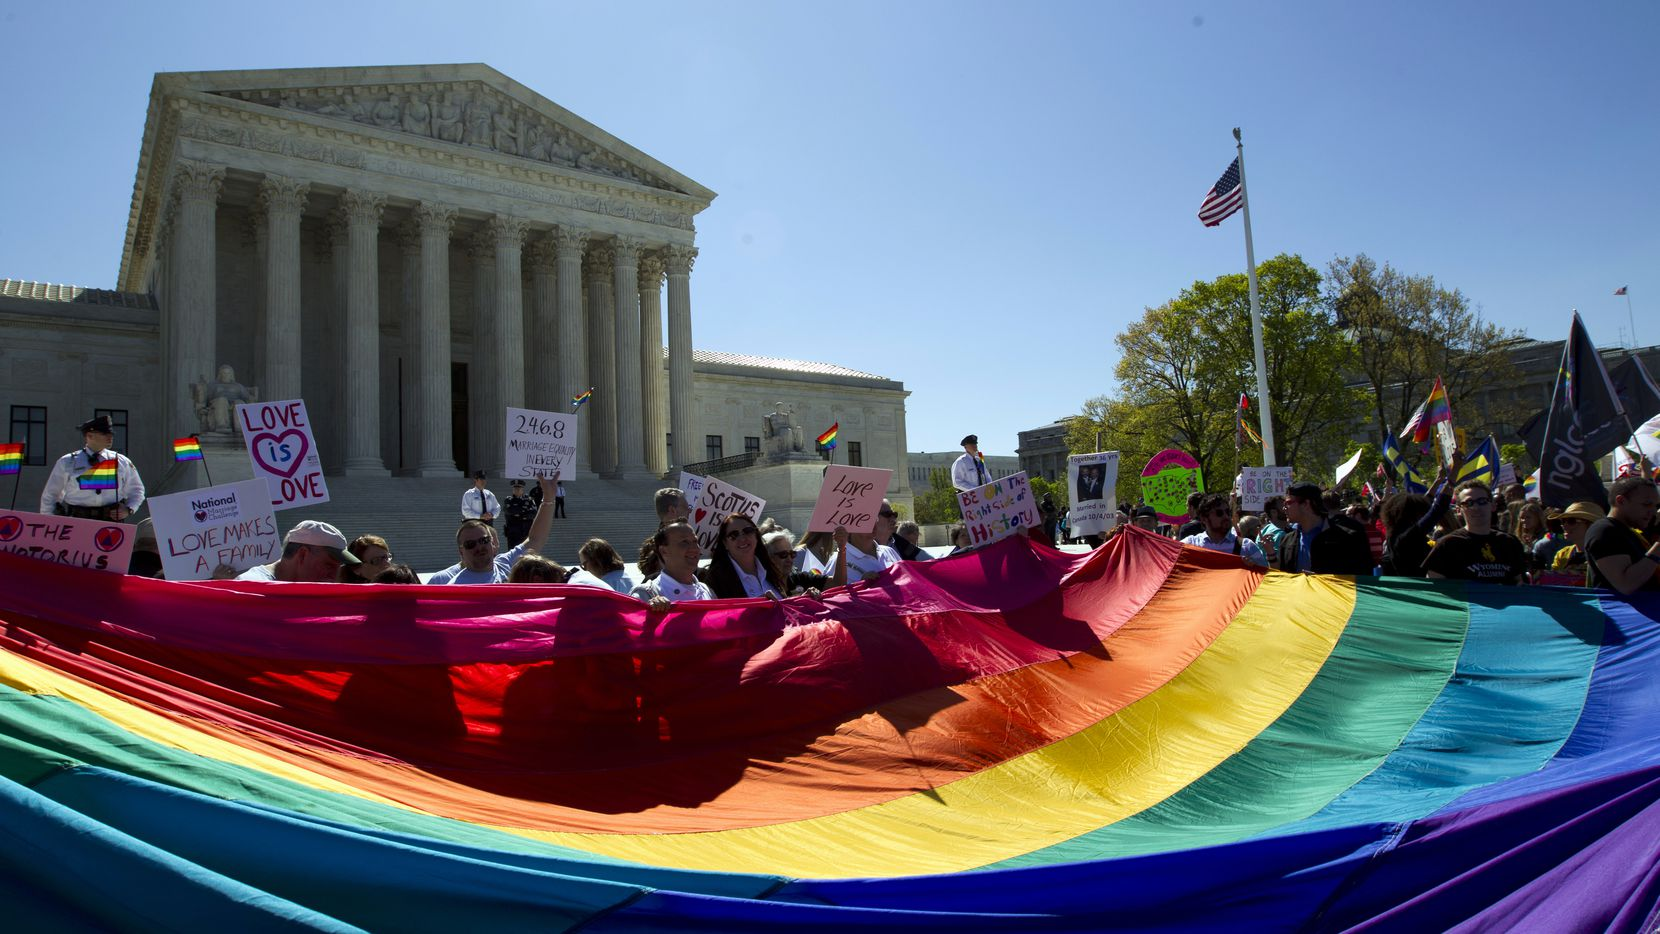 In this April 28, 2015 file photo, demonstrators stand in front of a rainbow flag of the Supreme Court in Washington, as the court was set to hear historic arguments in cases that made same-sex marriage the law of the land. Two Texas judges say their religious beliefs allow them to decline to officiate at same-sex marriages.